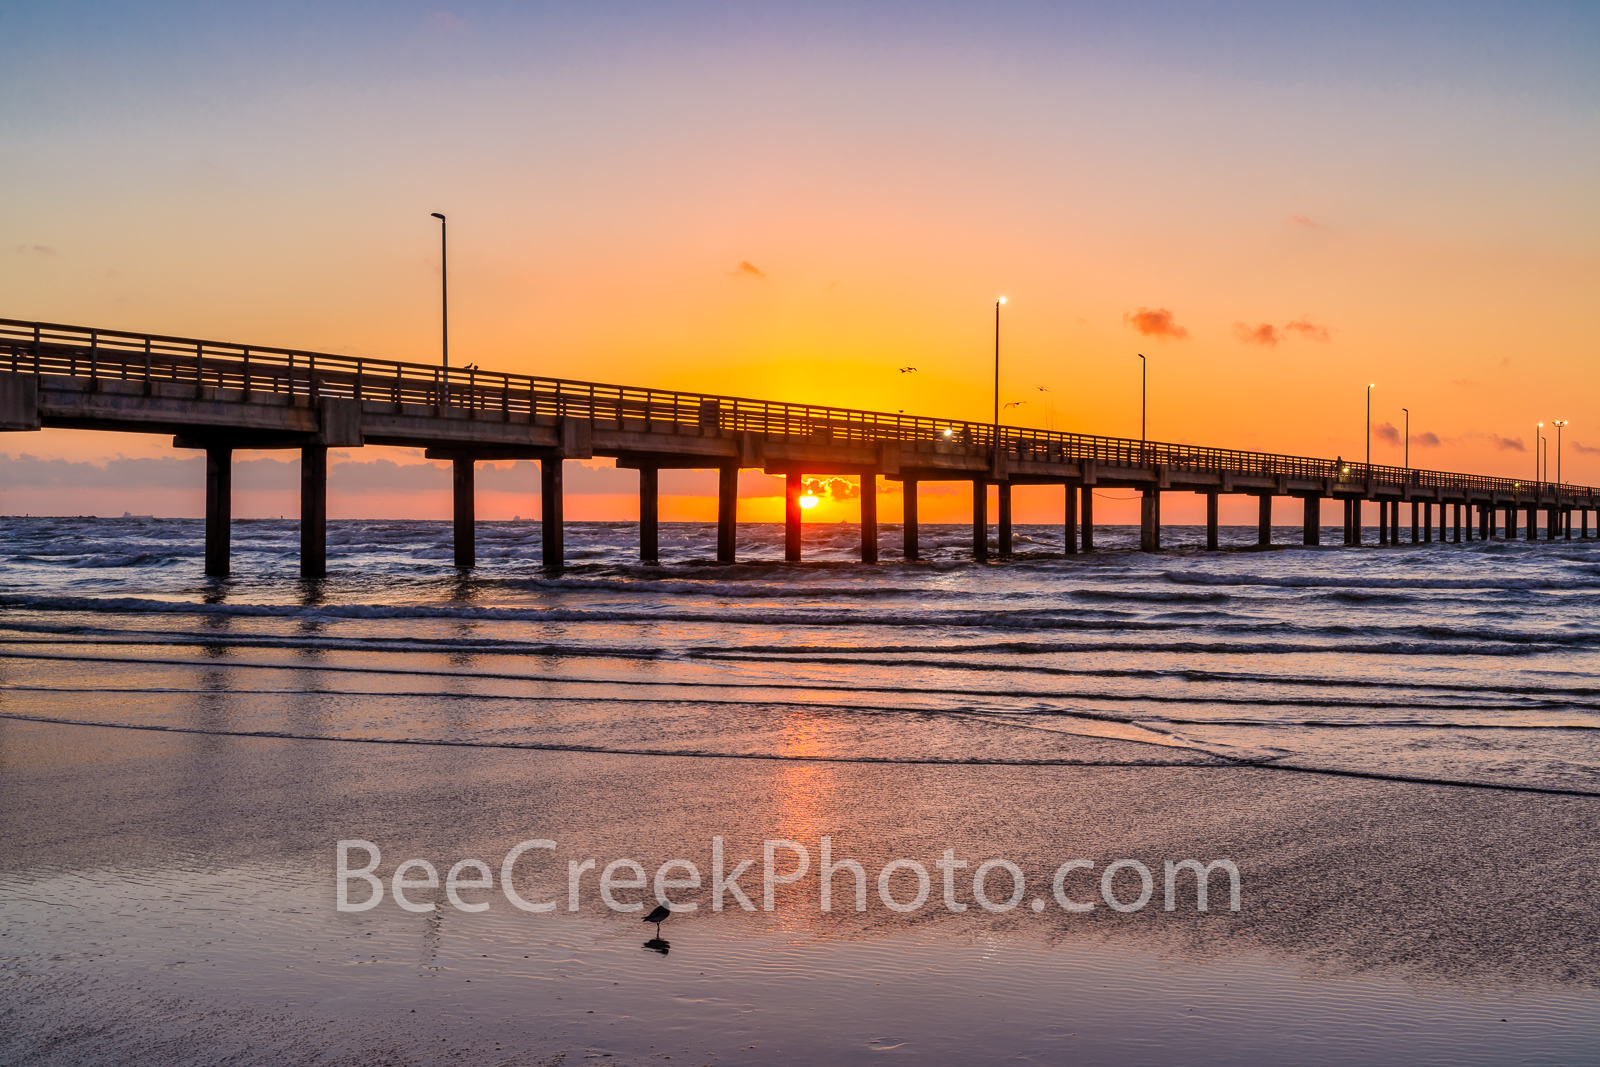 Caldwell Pier Sunrise - We captured this image one side of the Port A Caldwell Pier as the sunrise rises from under the pier...